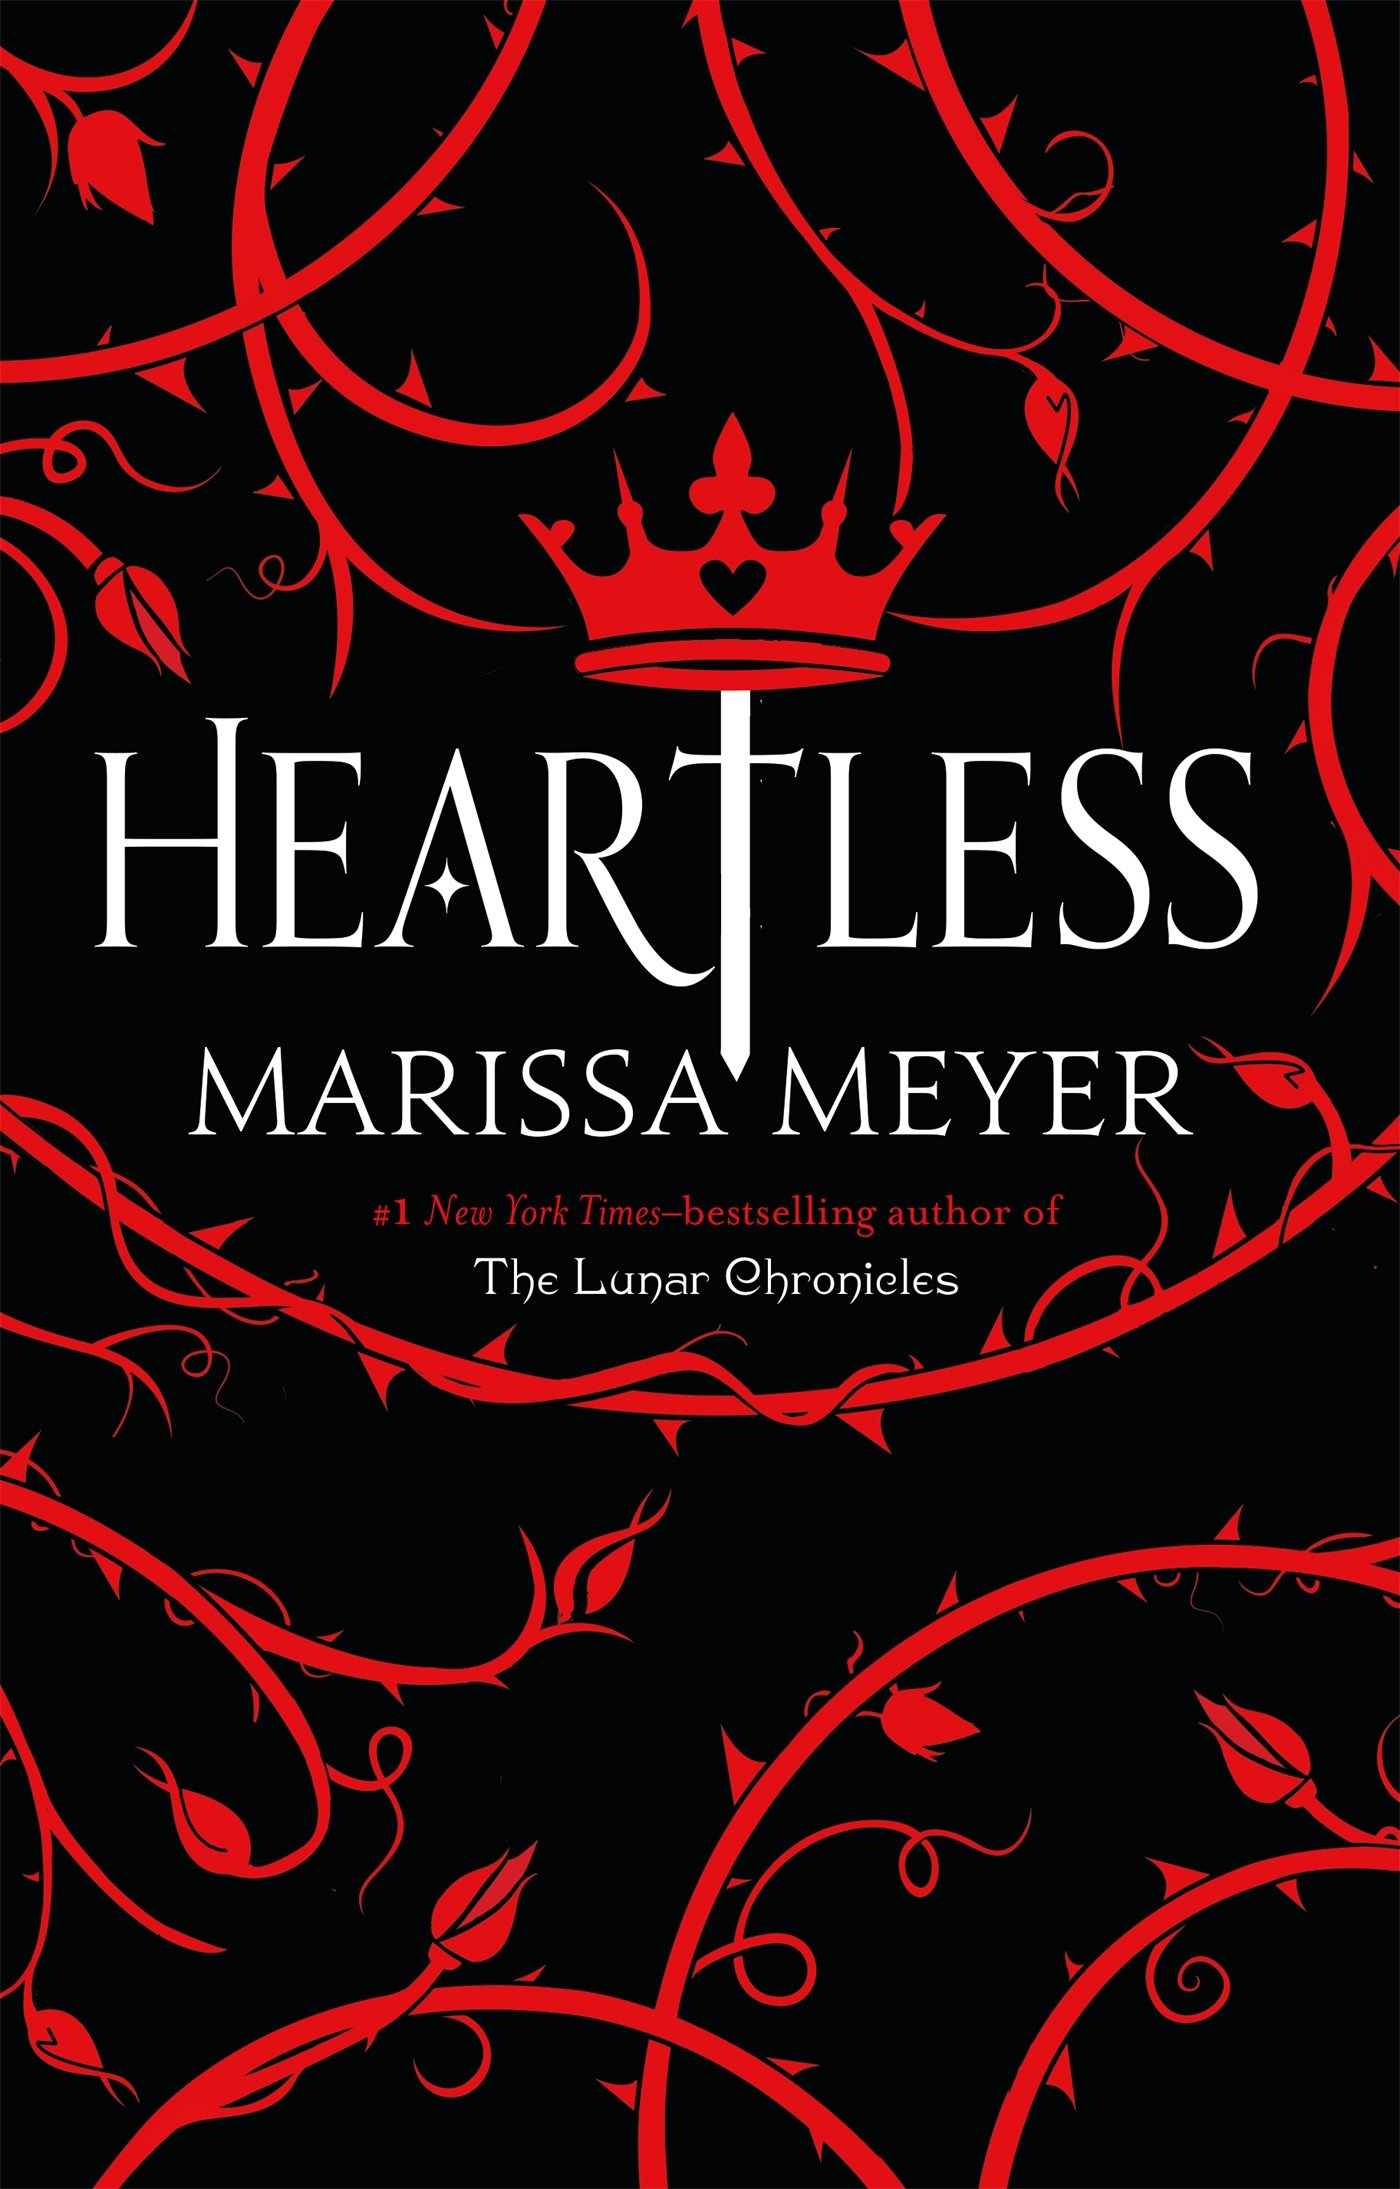 Amazon.com: Heartless (9781250044655): Meyer, Marissa: Books